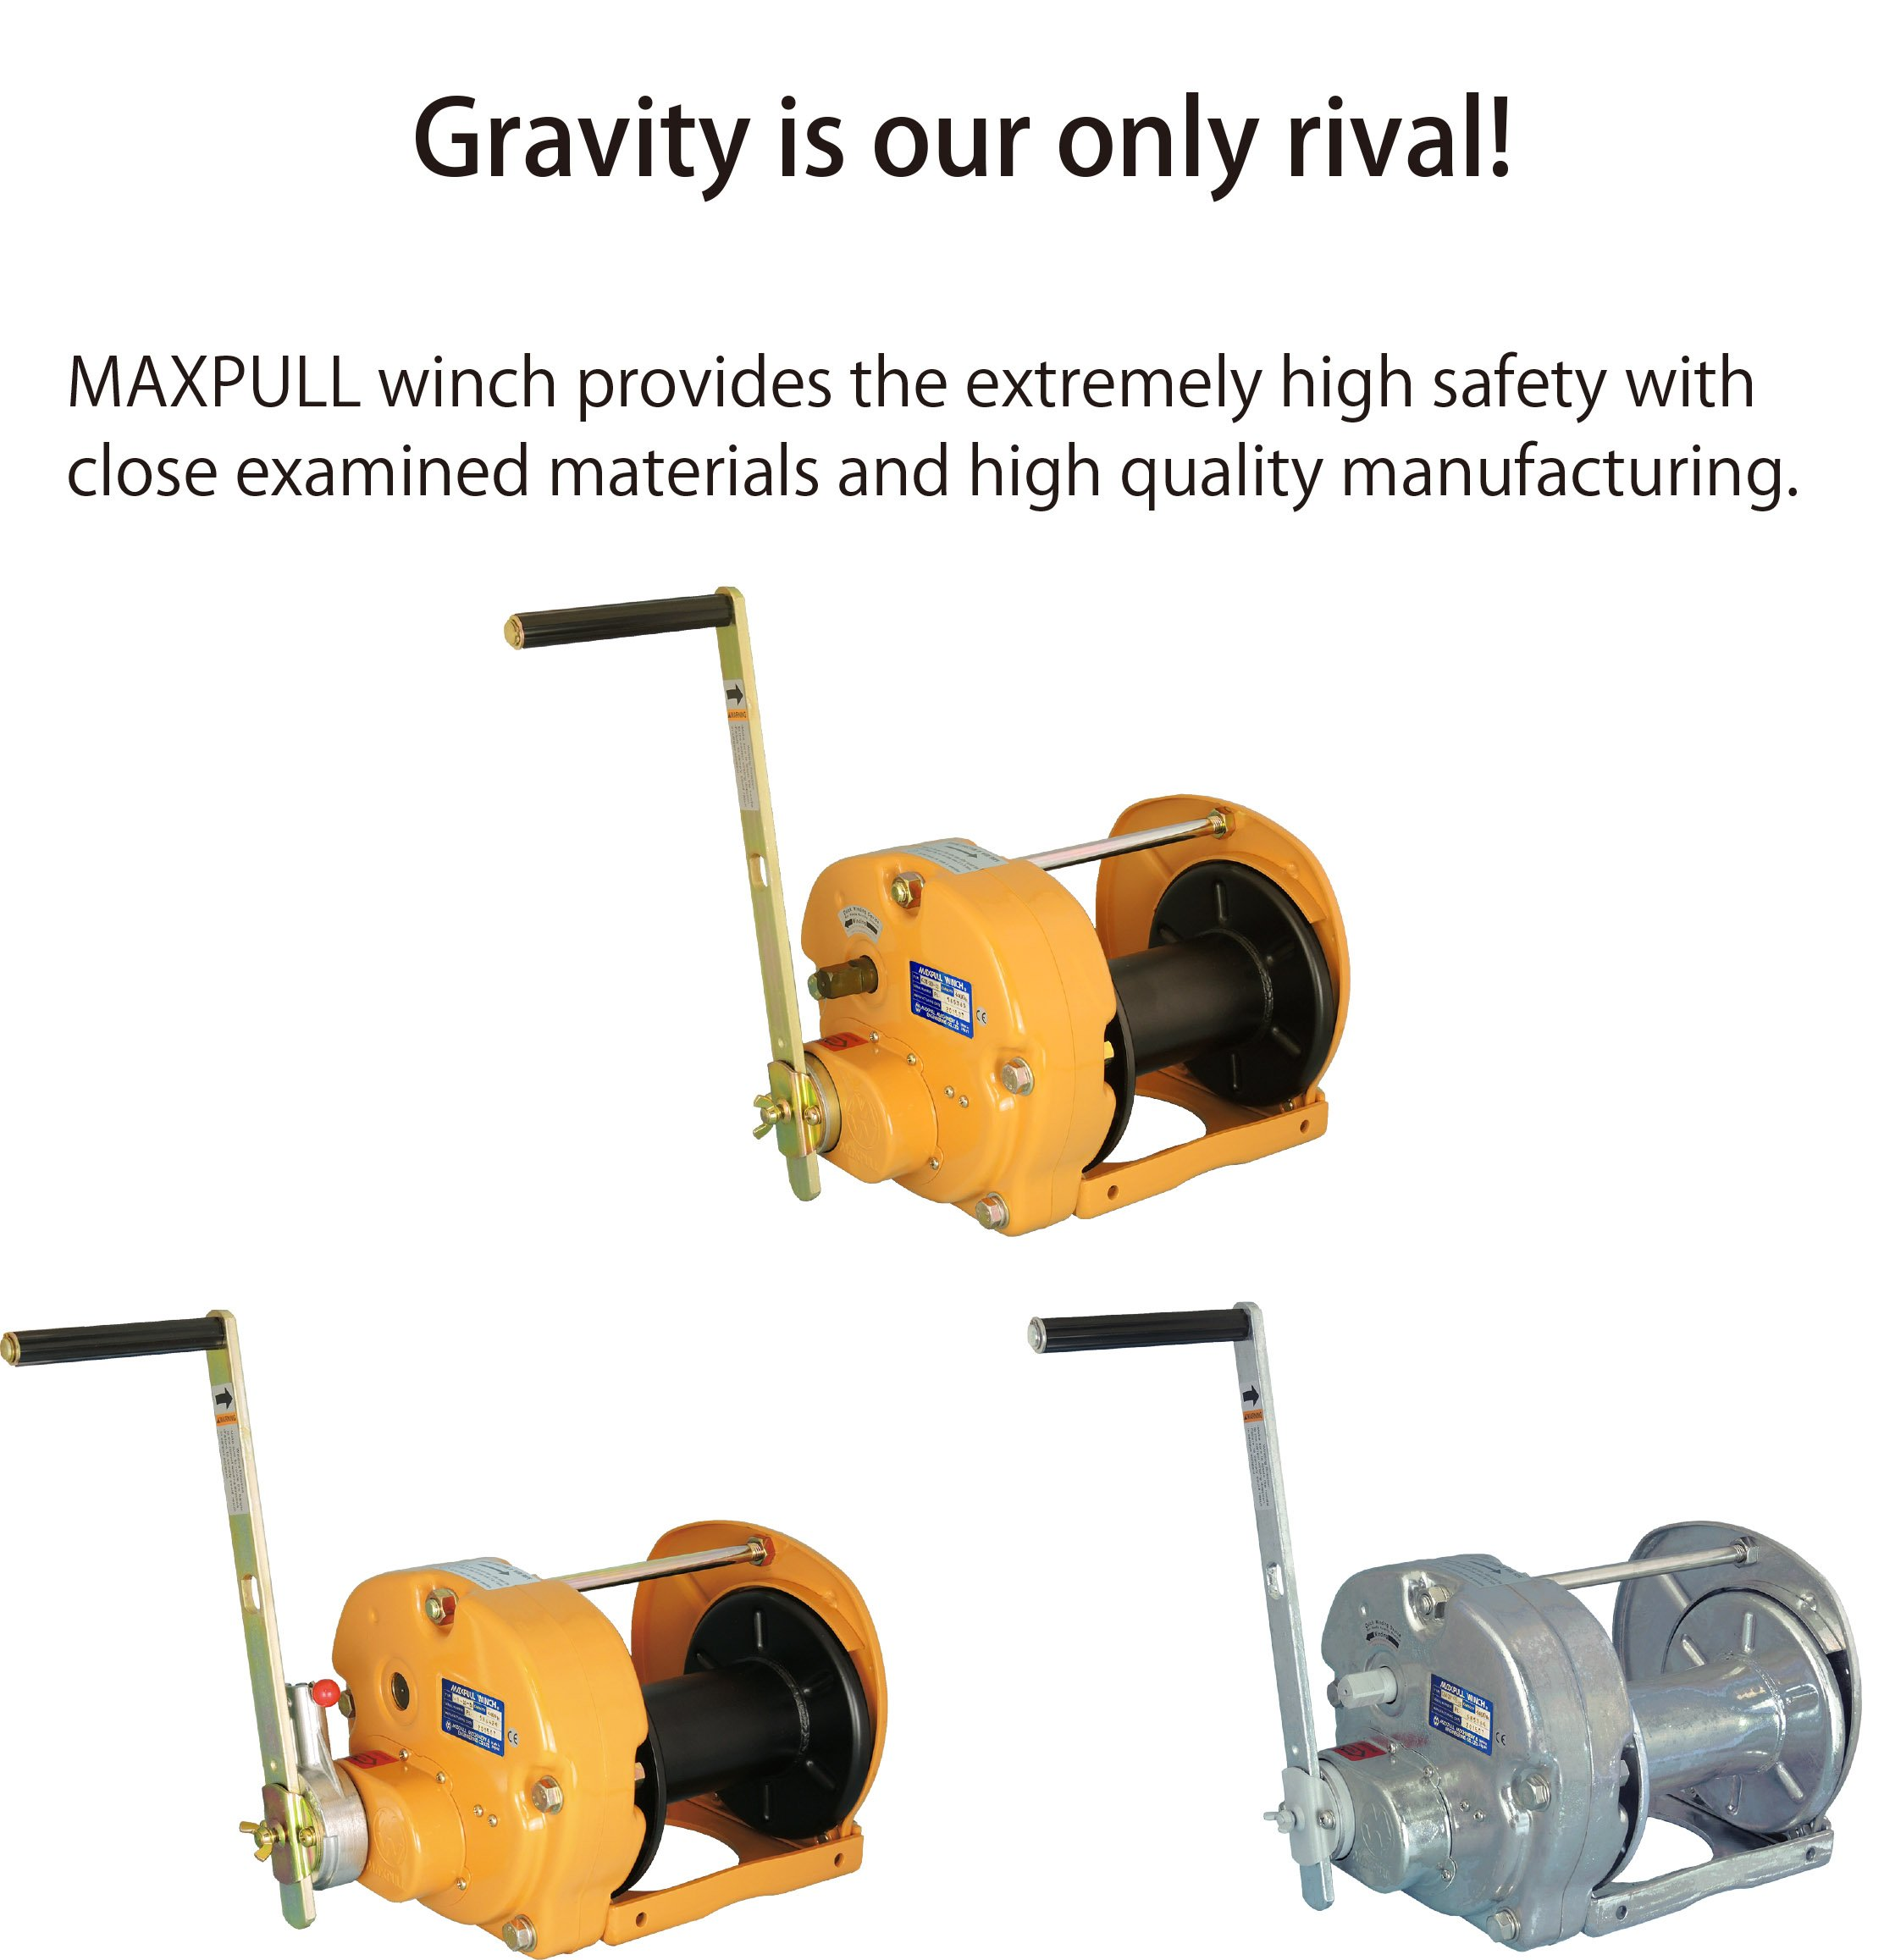 Pulling Hand Manual Winch with Automatic Brake 300 kg Capacity without Cable or Wire Rope Maxpull Steel Ratchet Handle Spur Gear Heavy Duty Lifting 660 lbs MR-3-SI